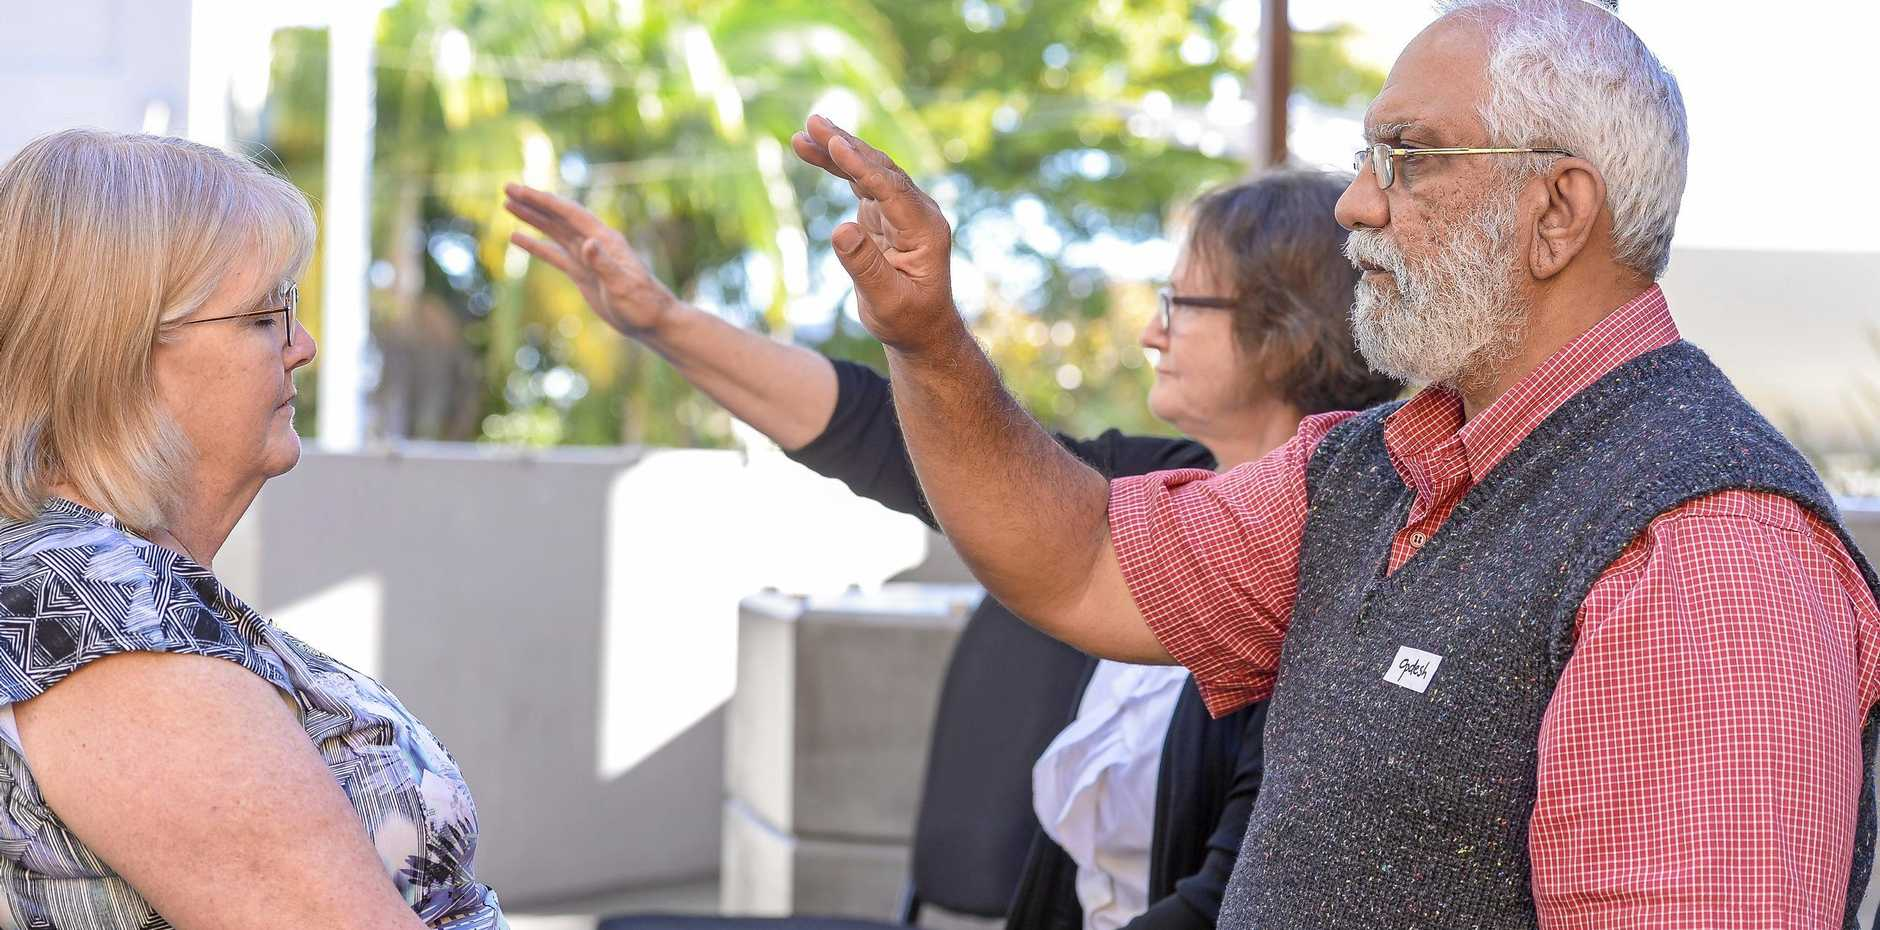 Opdesh was one of the practitioners at the come and try True Light sessions were held as part of the Gladstone Regional Council seniors week activities.